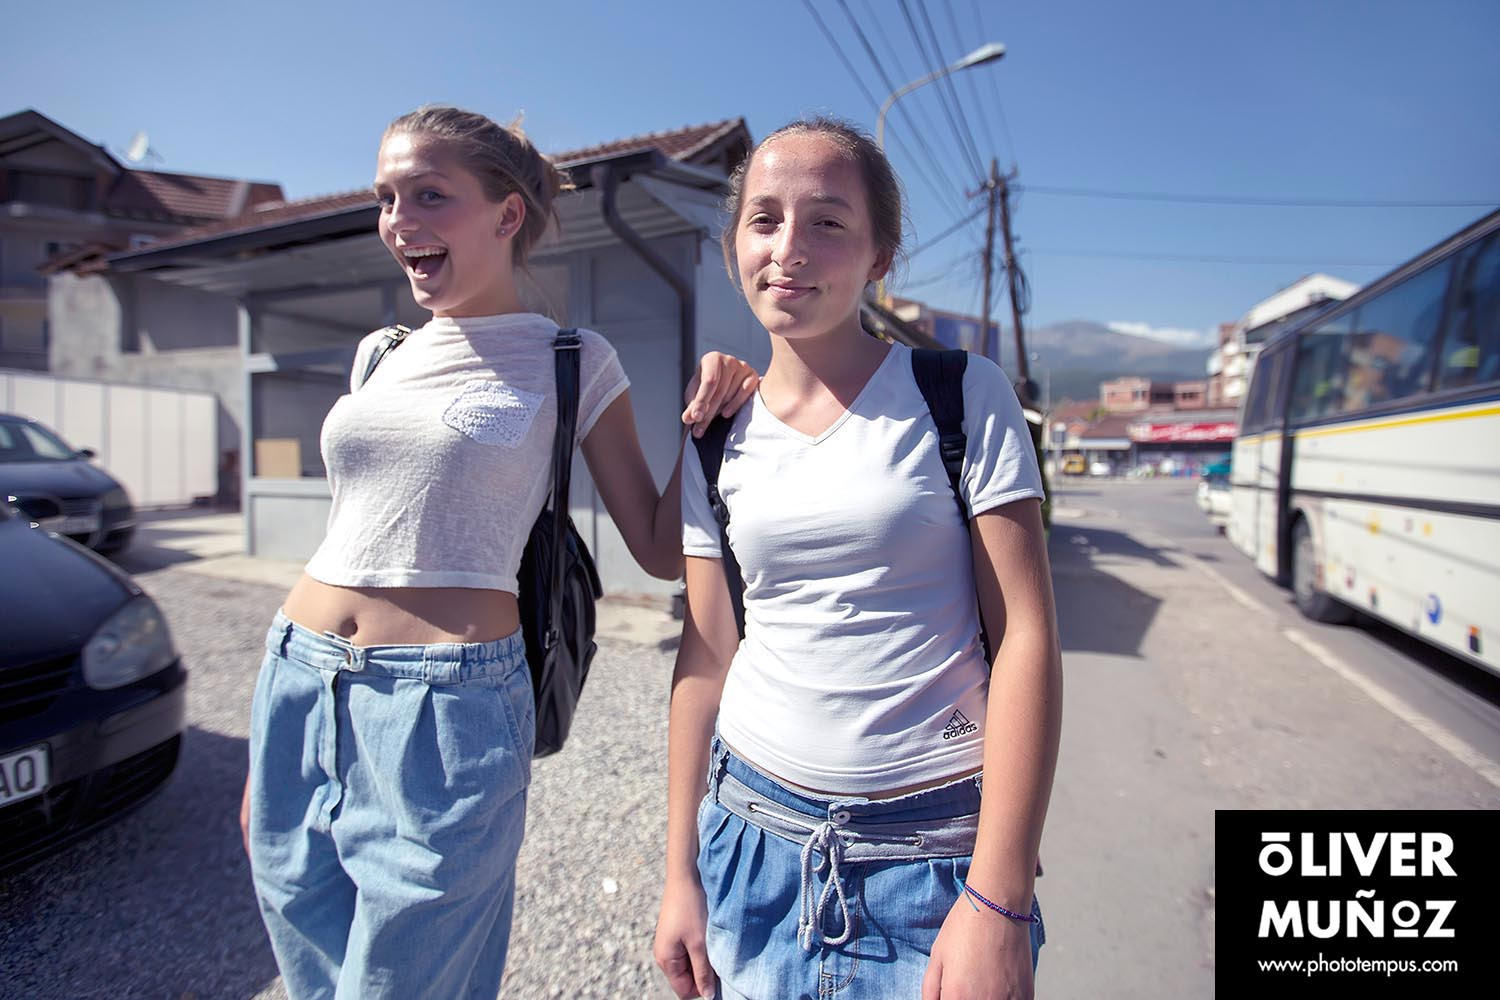 TRAVEL DIARY – The young Kosovo